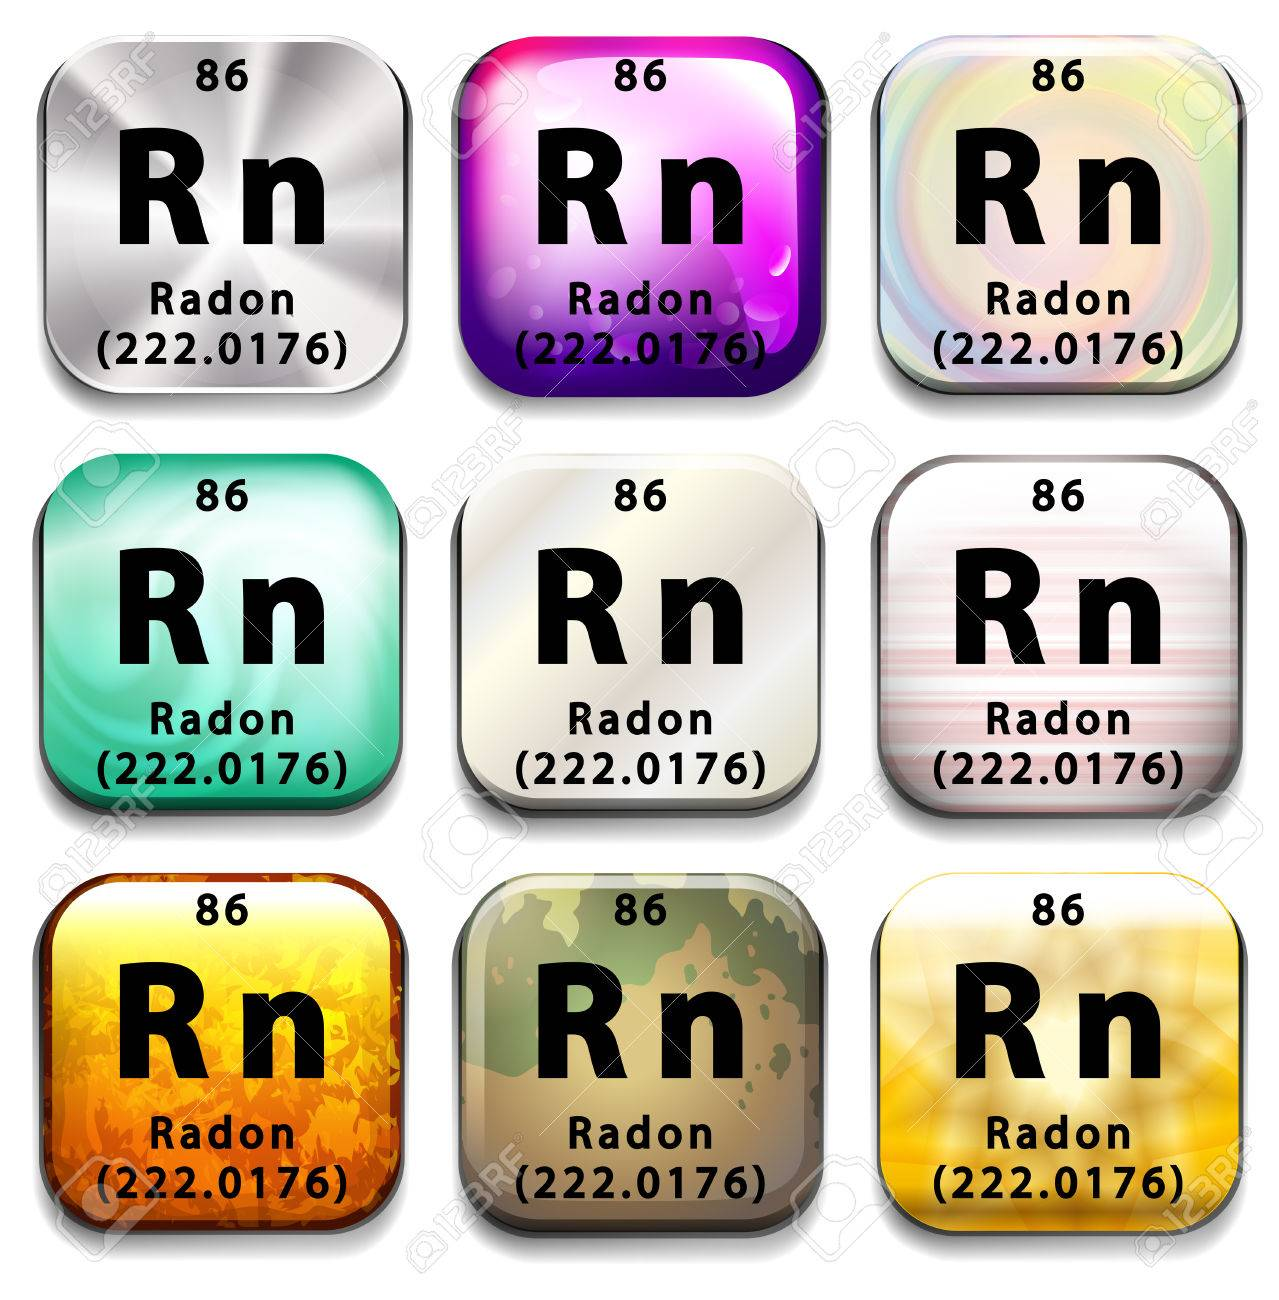 Radon symbol periodic table image collections periodic table images a periodic table showing radon on a white background royalty free a periodic table showing radon gamestrikefo Choice Image